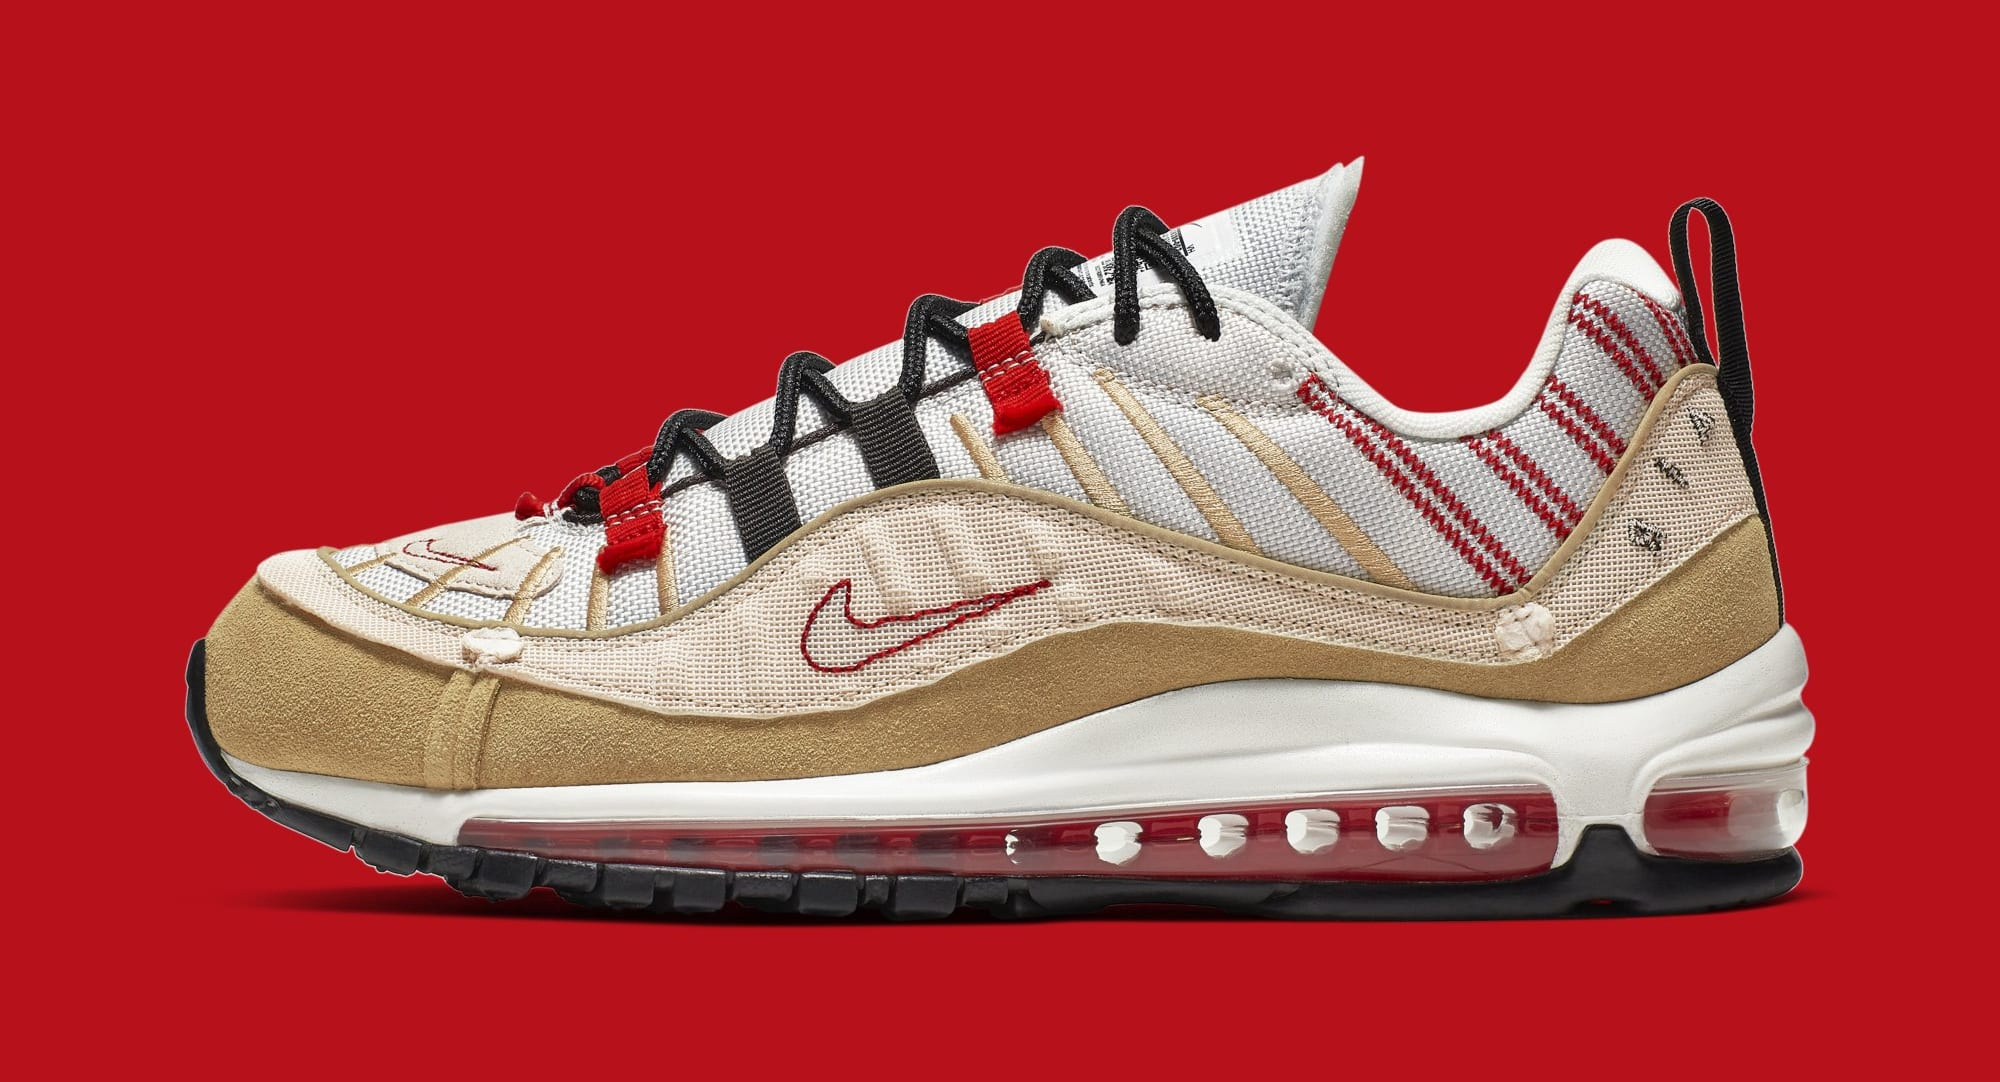 Nike Air Max 98 'Inside Out' AO9380-003 (Lateral)